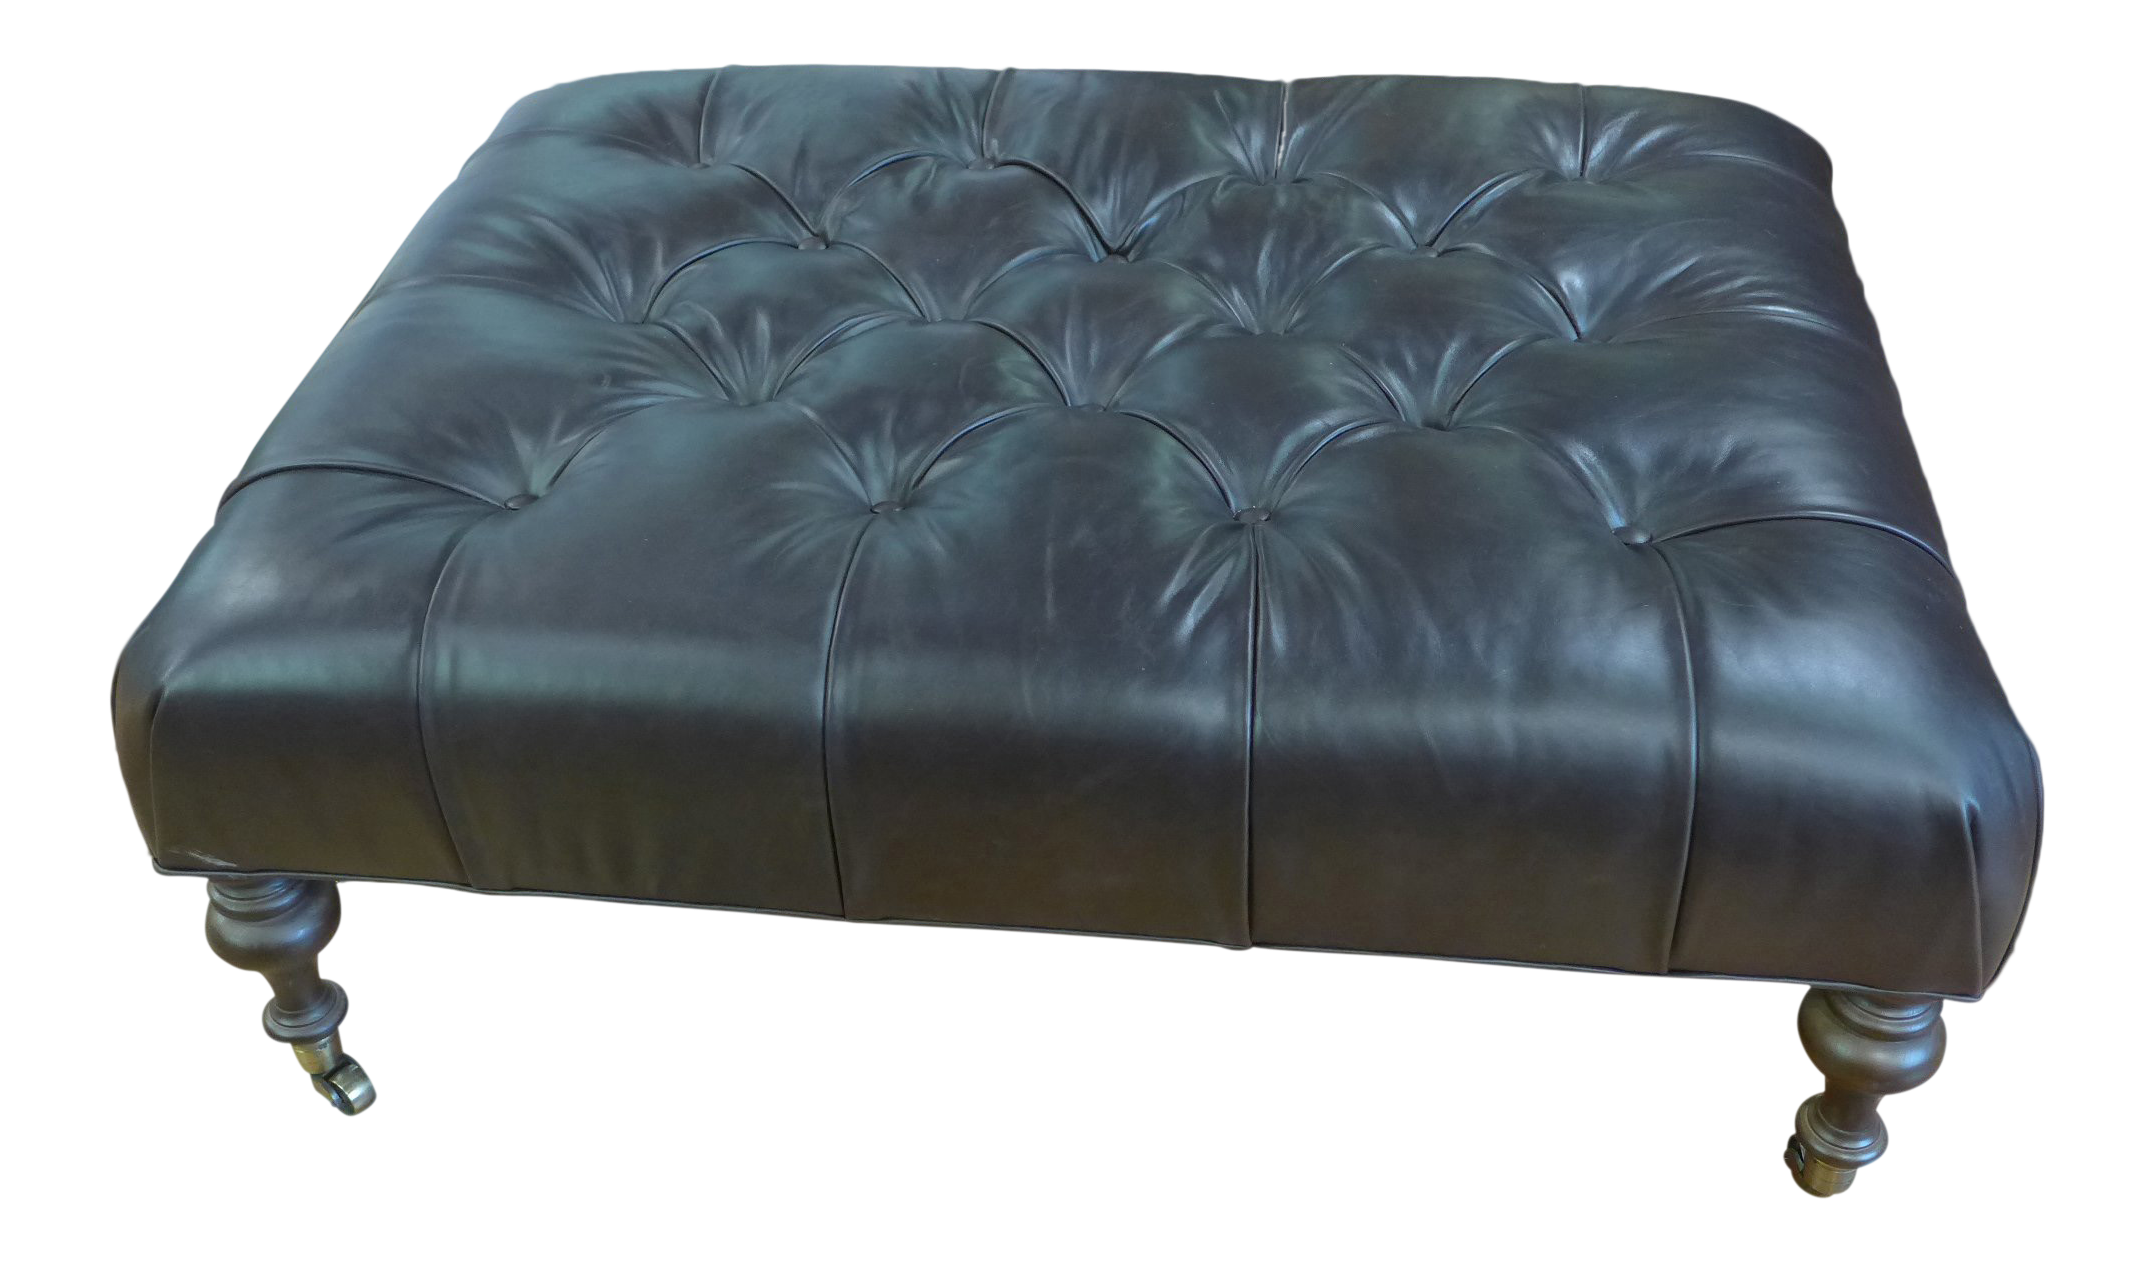 Awe Inspiring Modern Dark Leather Tufted Ottoman Coffee Table Dailytribune Chair Design For Home Dailytribuneorg